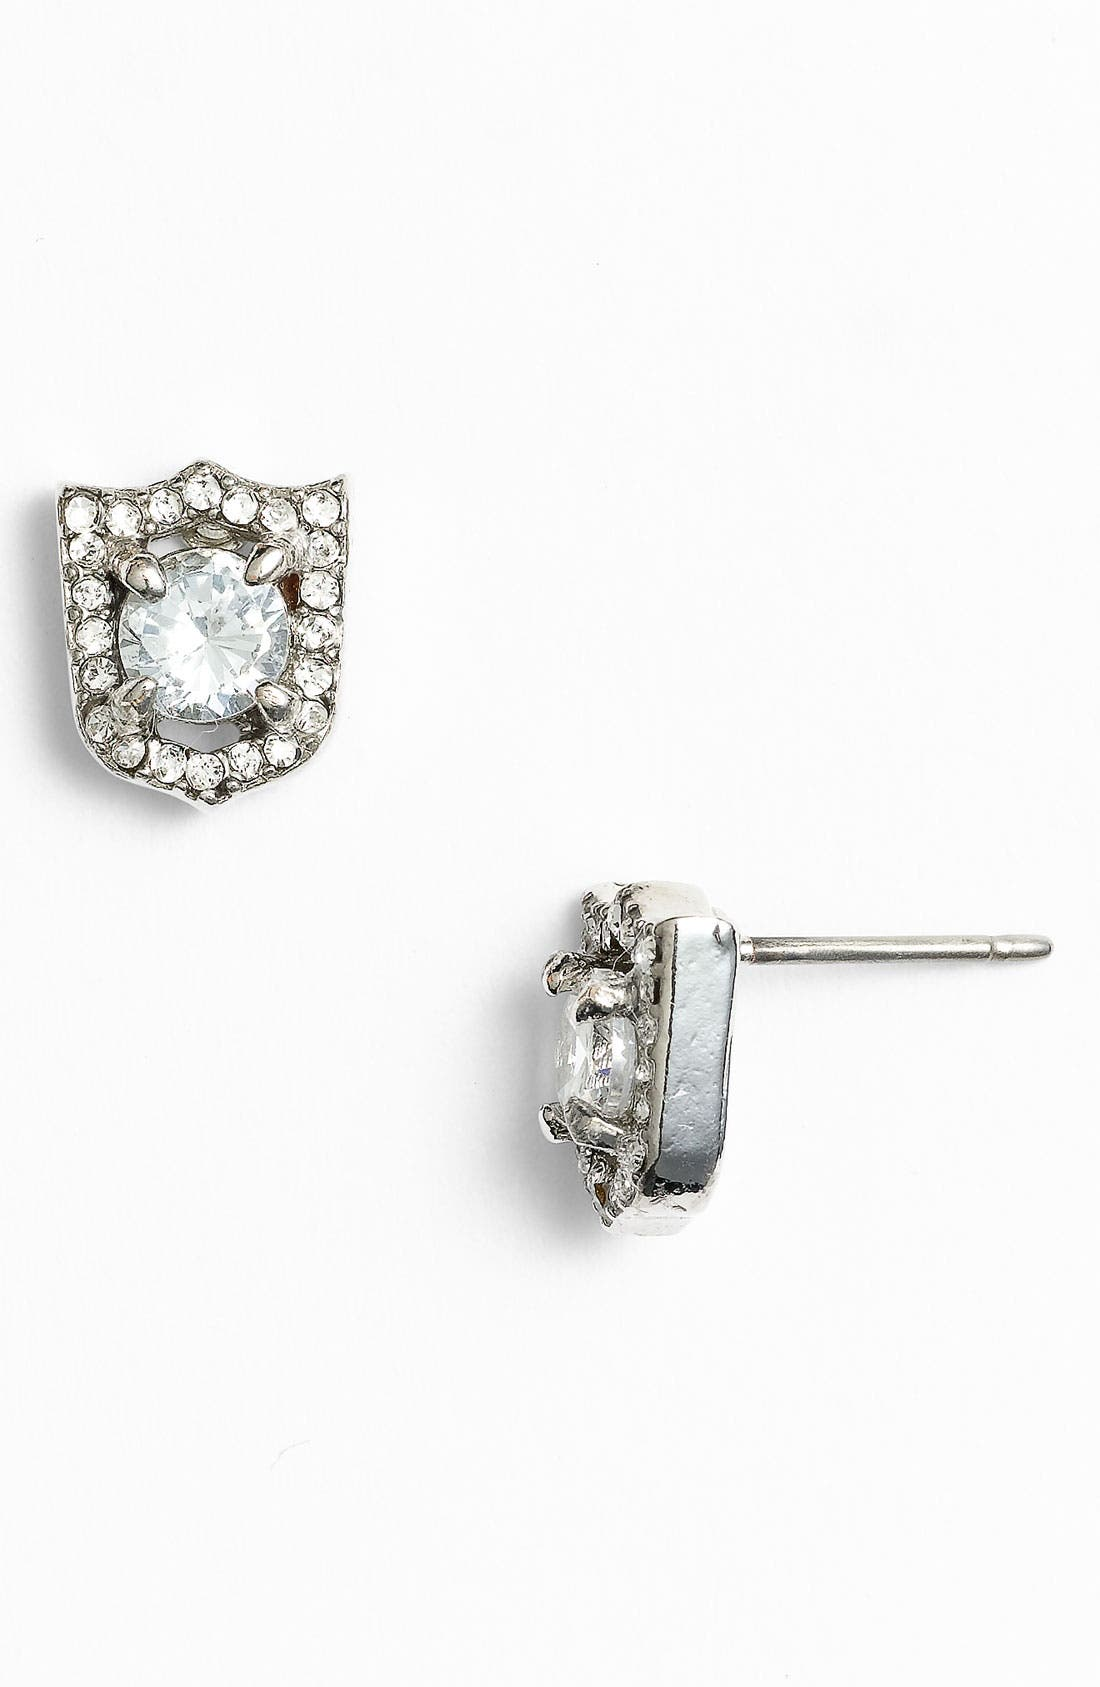 Alternate Image 1 Selected - Juicy Couture 'Key to the Castle' Shield Stud Earrings